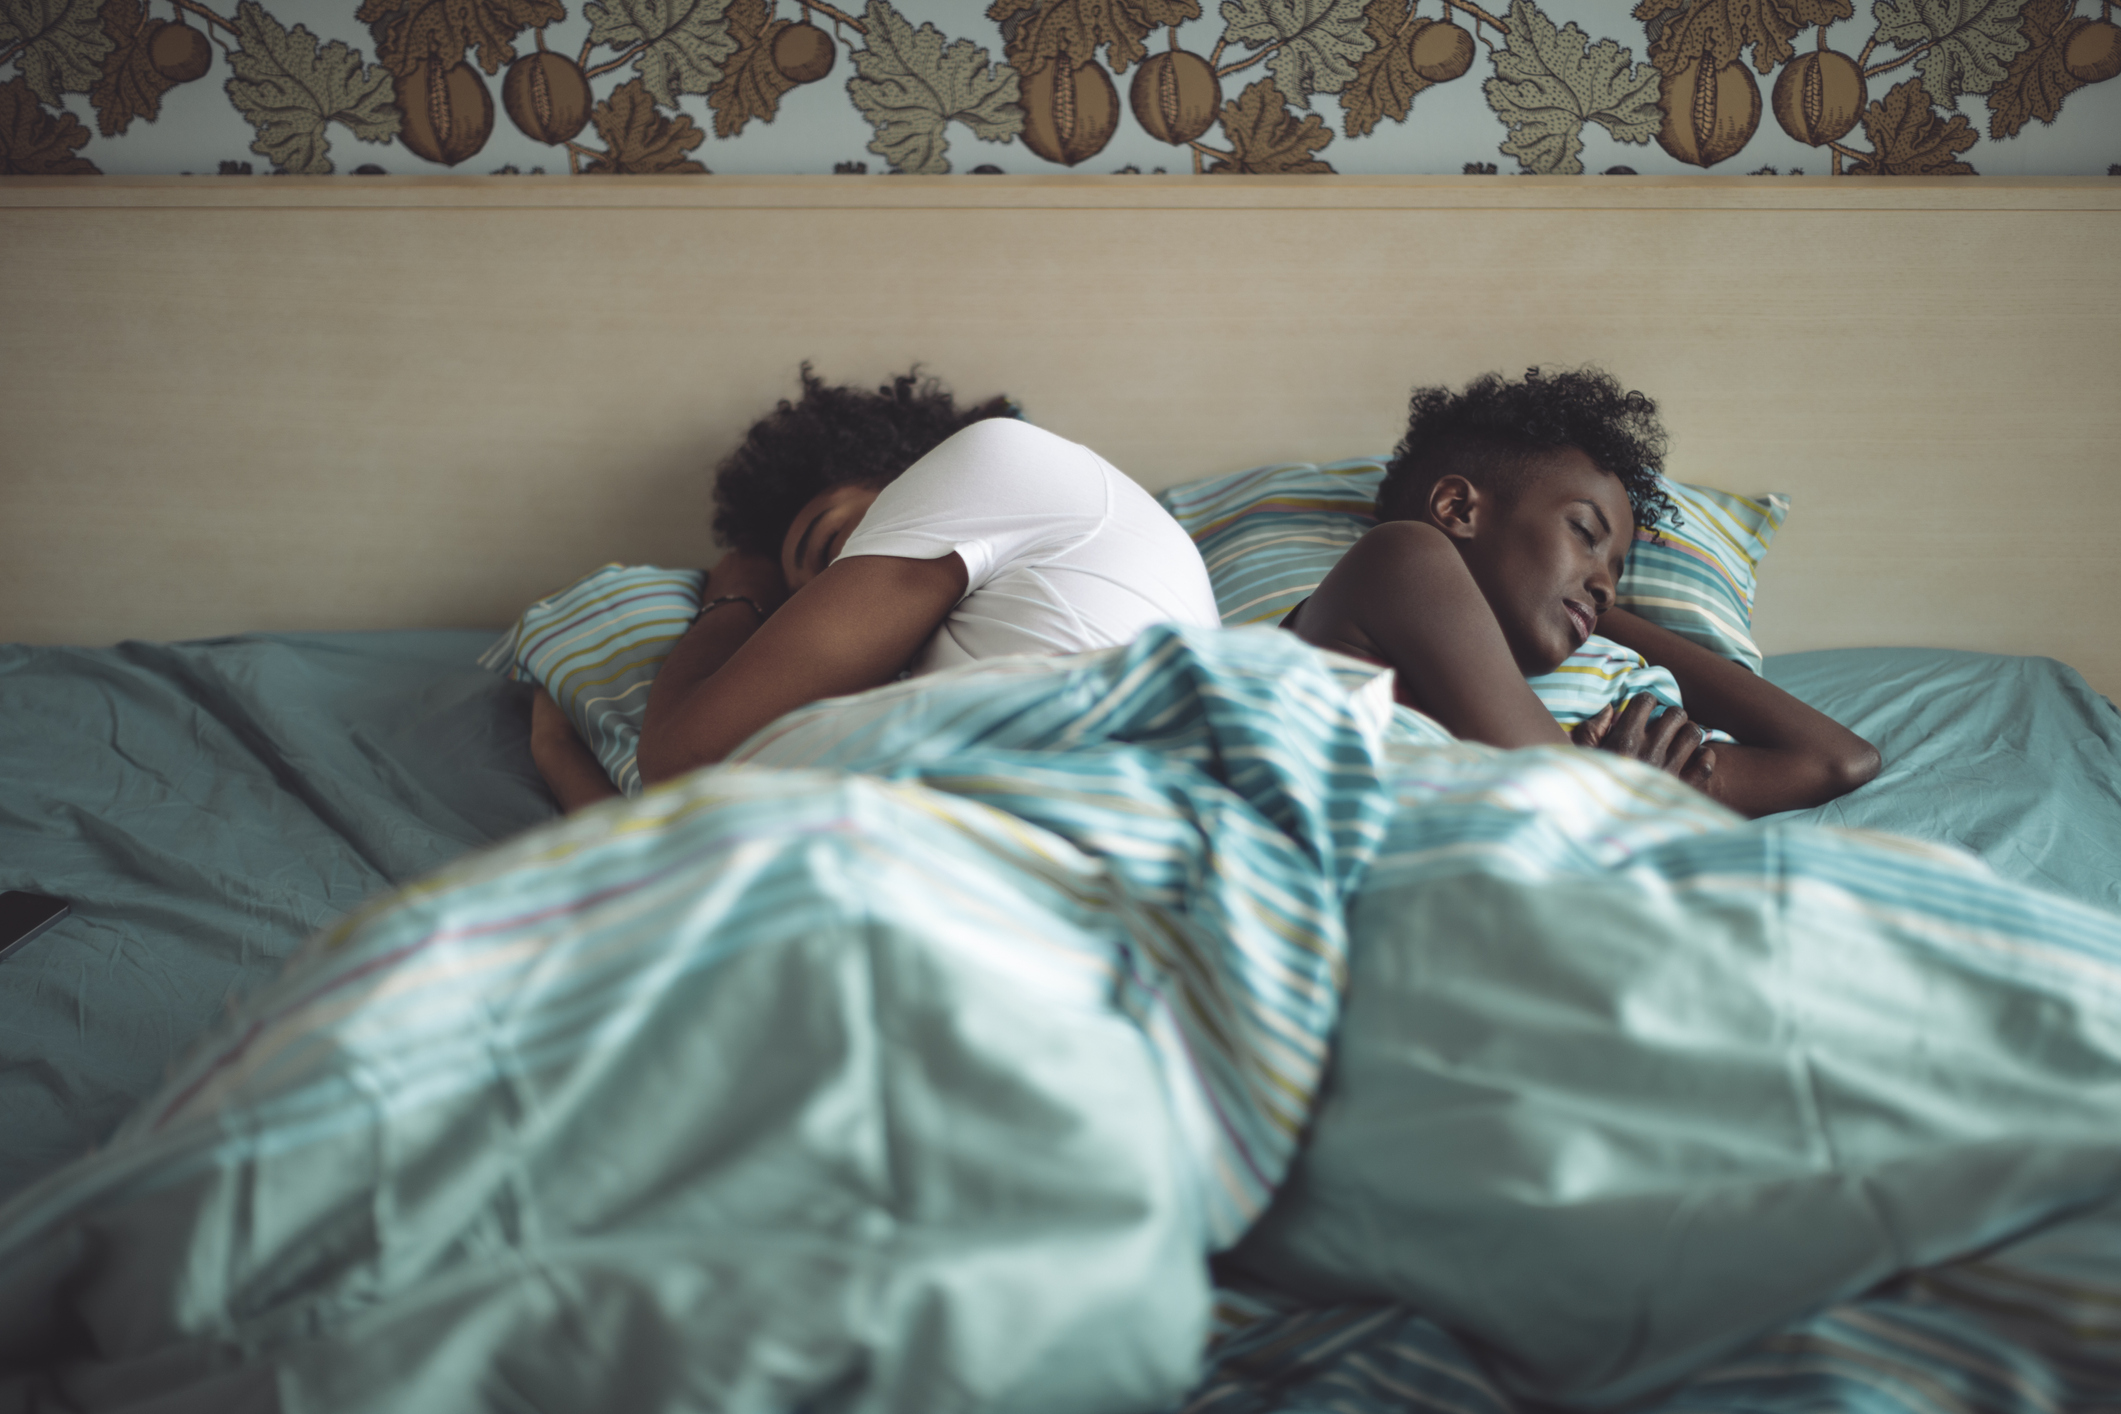 Here's what you need to know if you've had dreams about breaking up with your S.O.